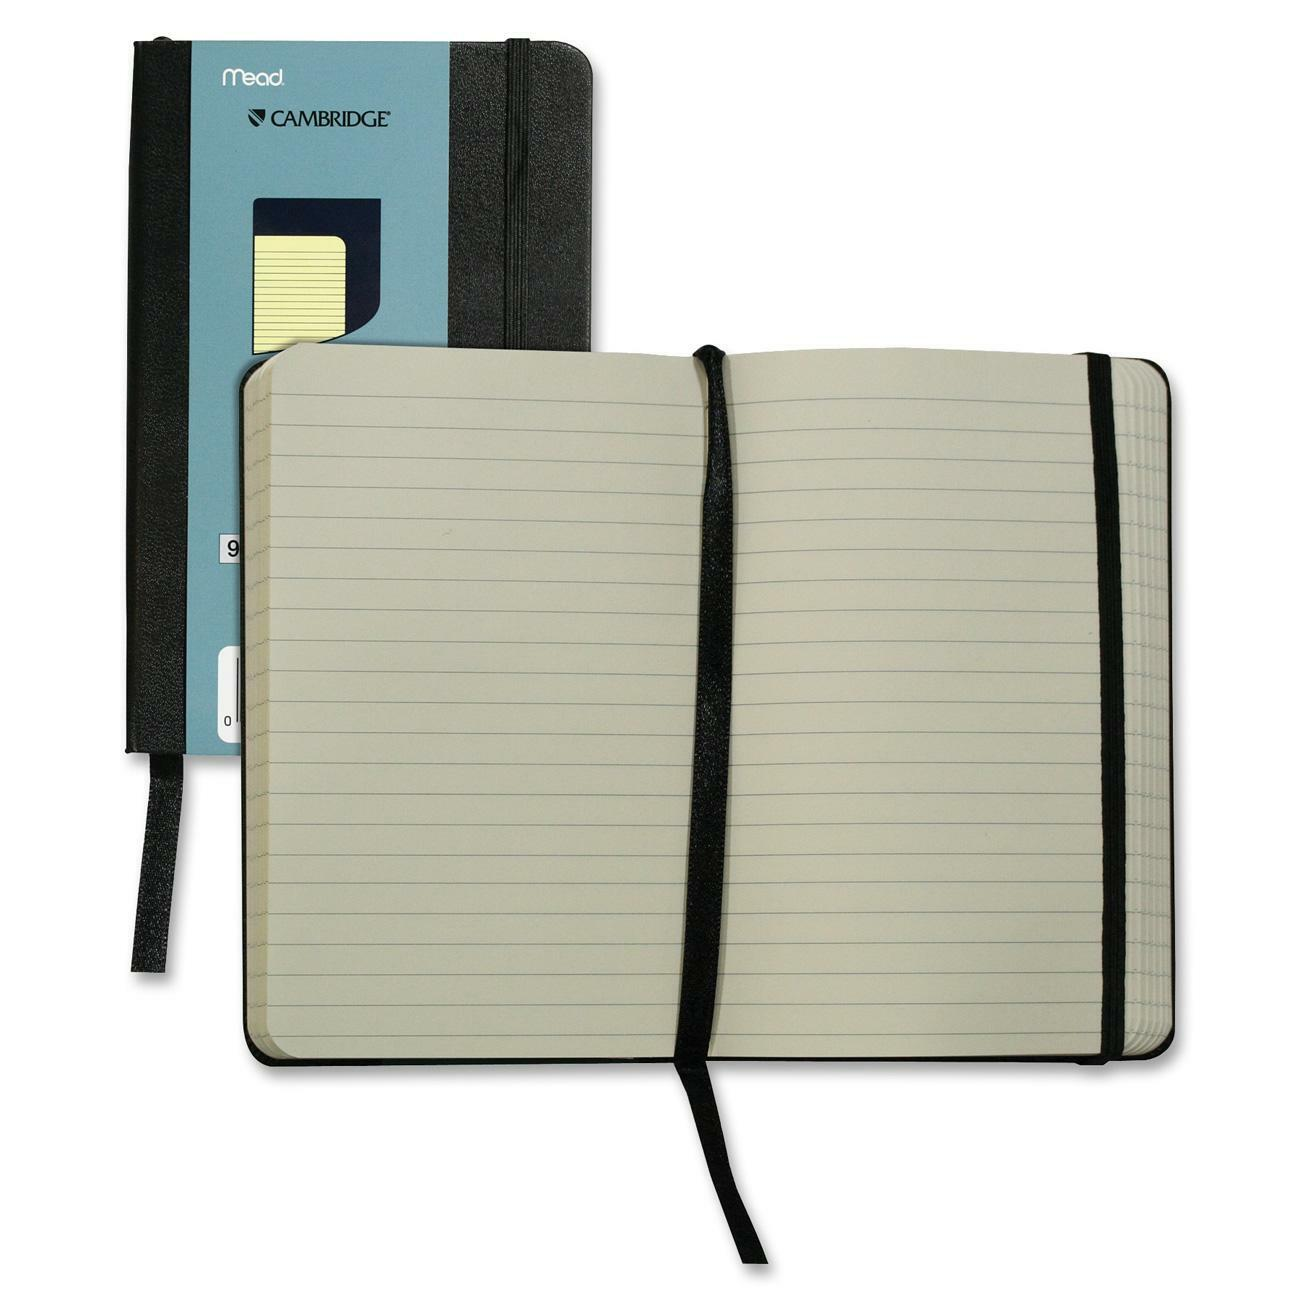 Hilroy Pocket Size Memo Business Notebook - 96 Page